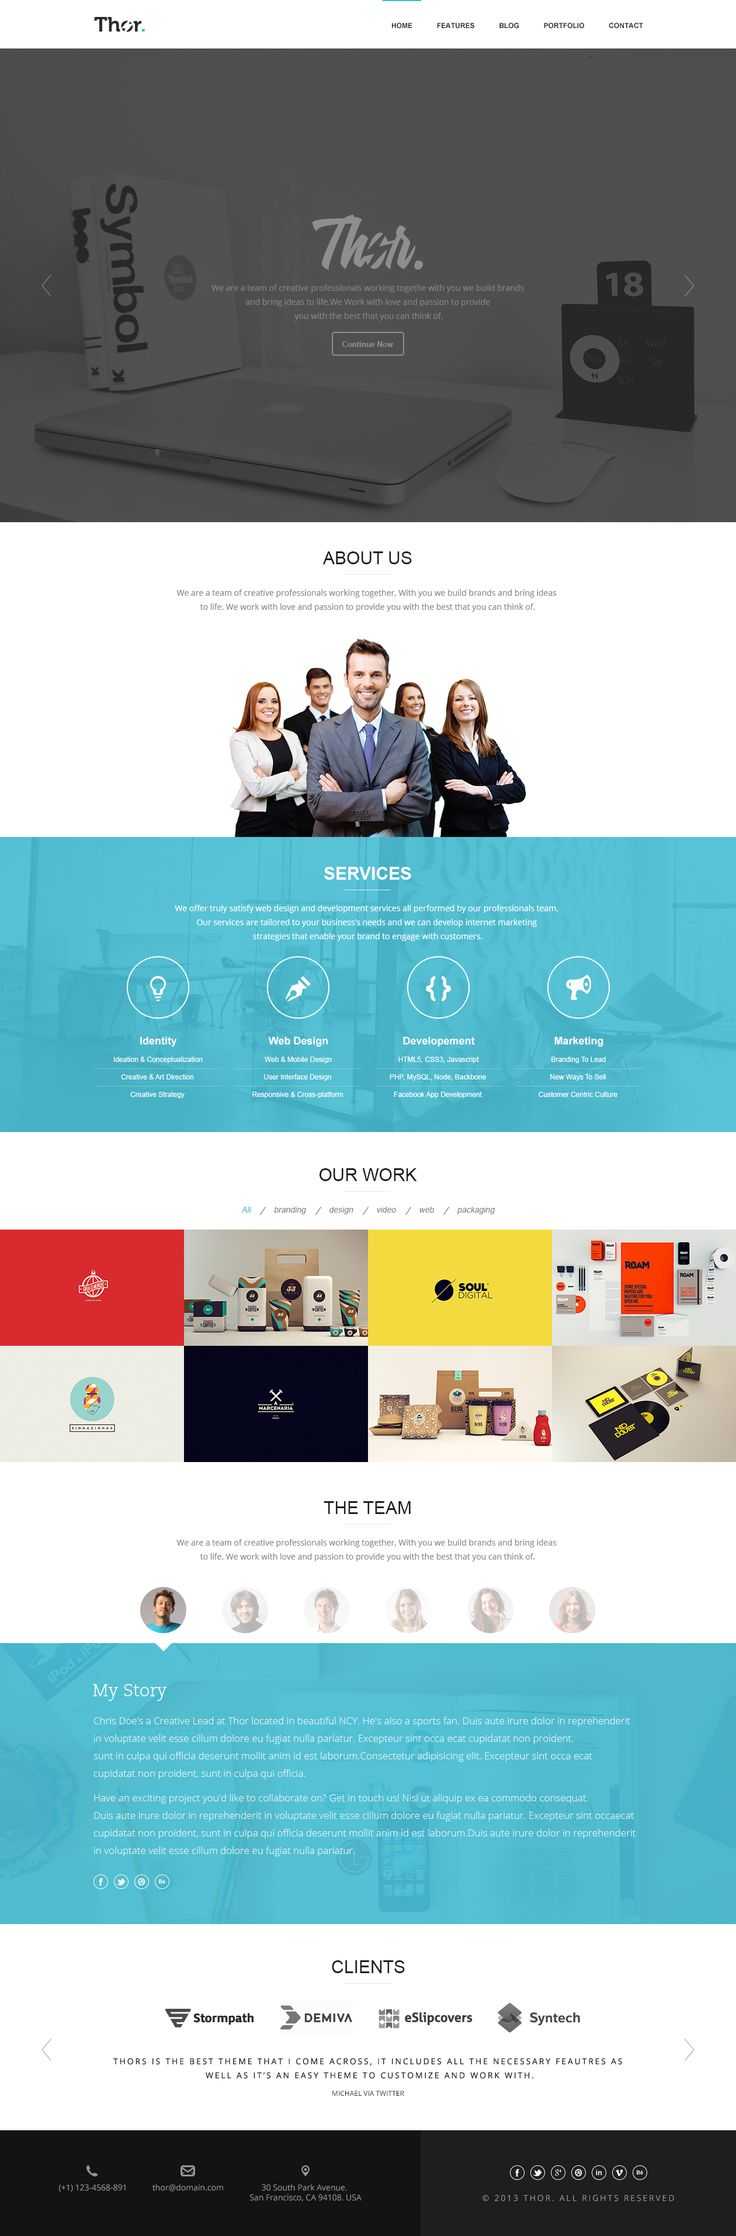 48 best Responsive Web Design images on Pinterest | Website designs ...